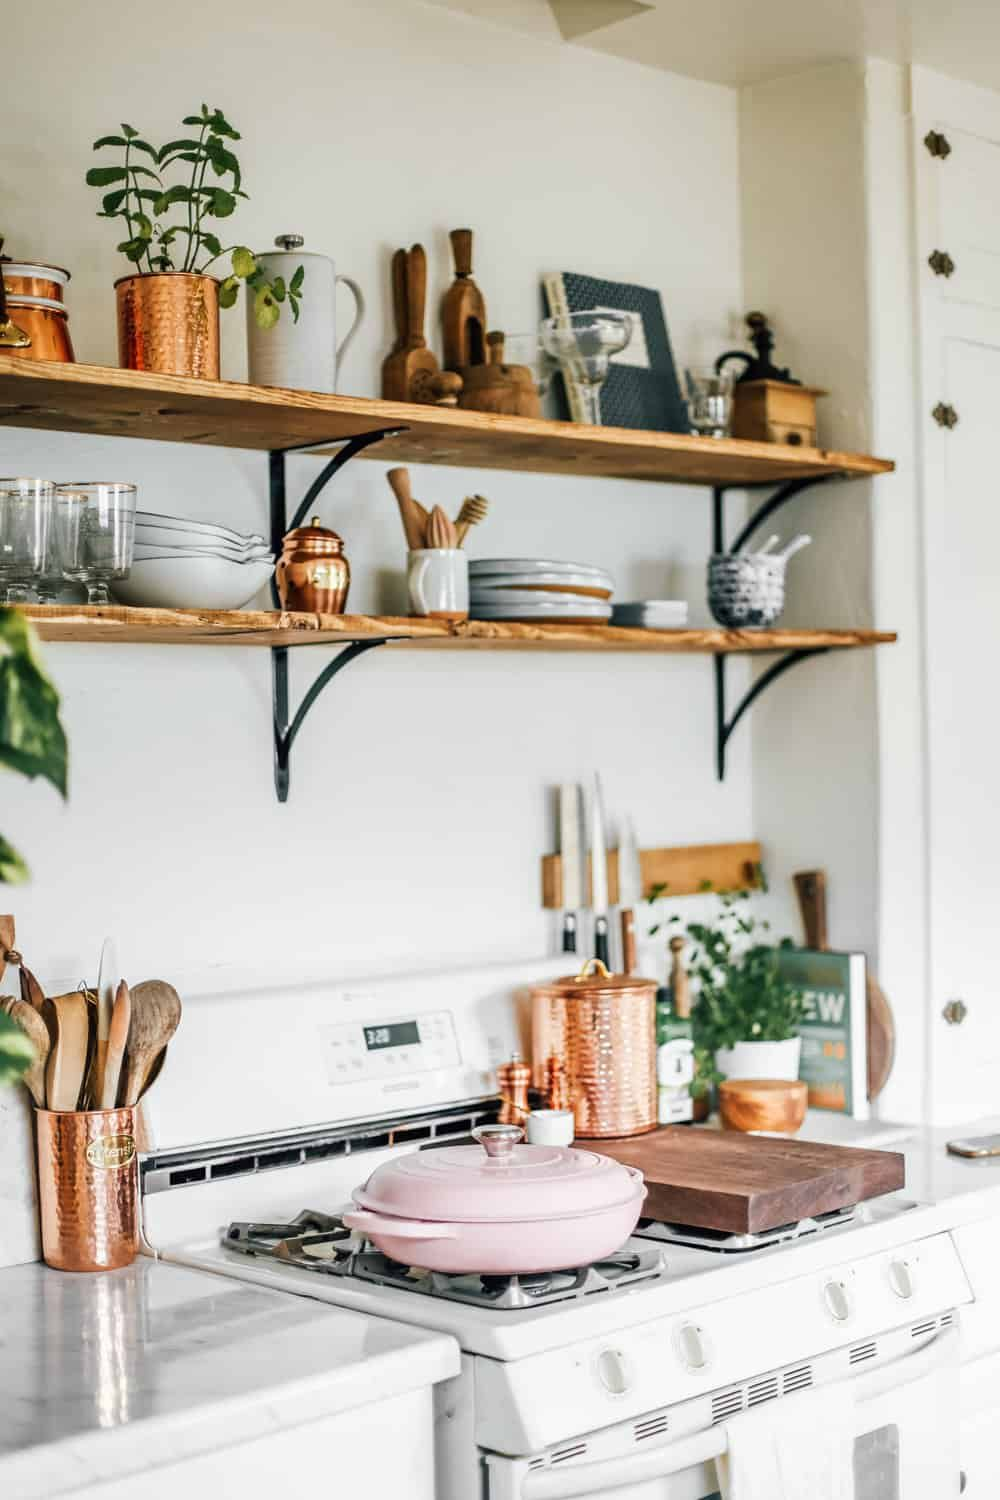 My Rental Kitchen Makeover: Before & After , tips and ideas!